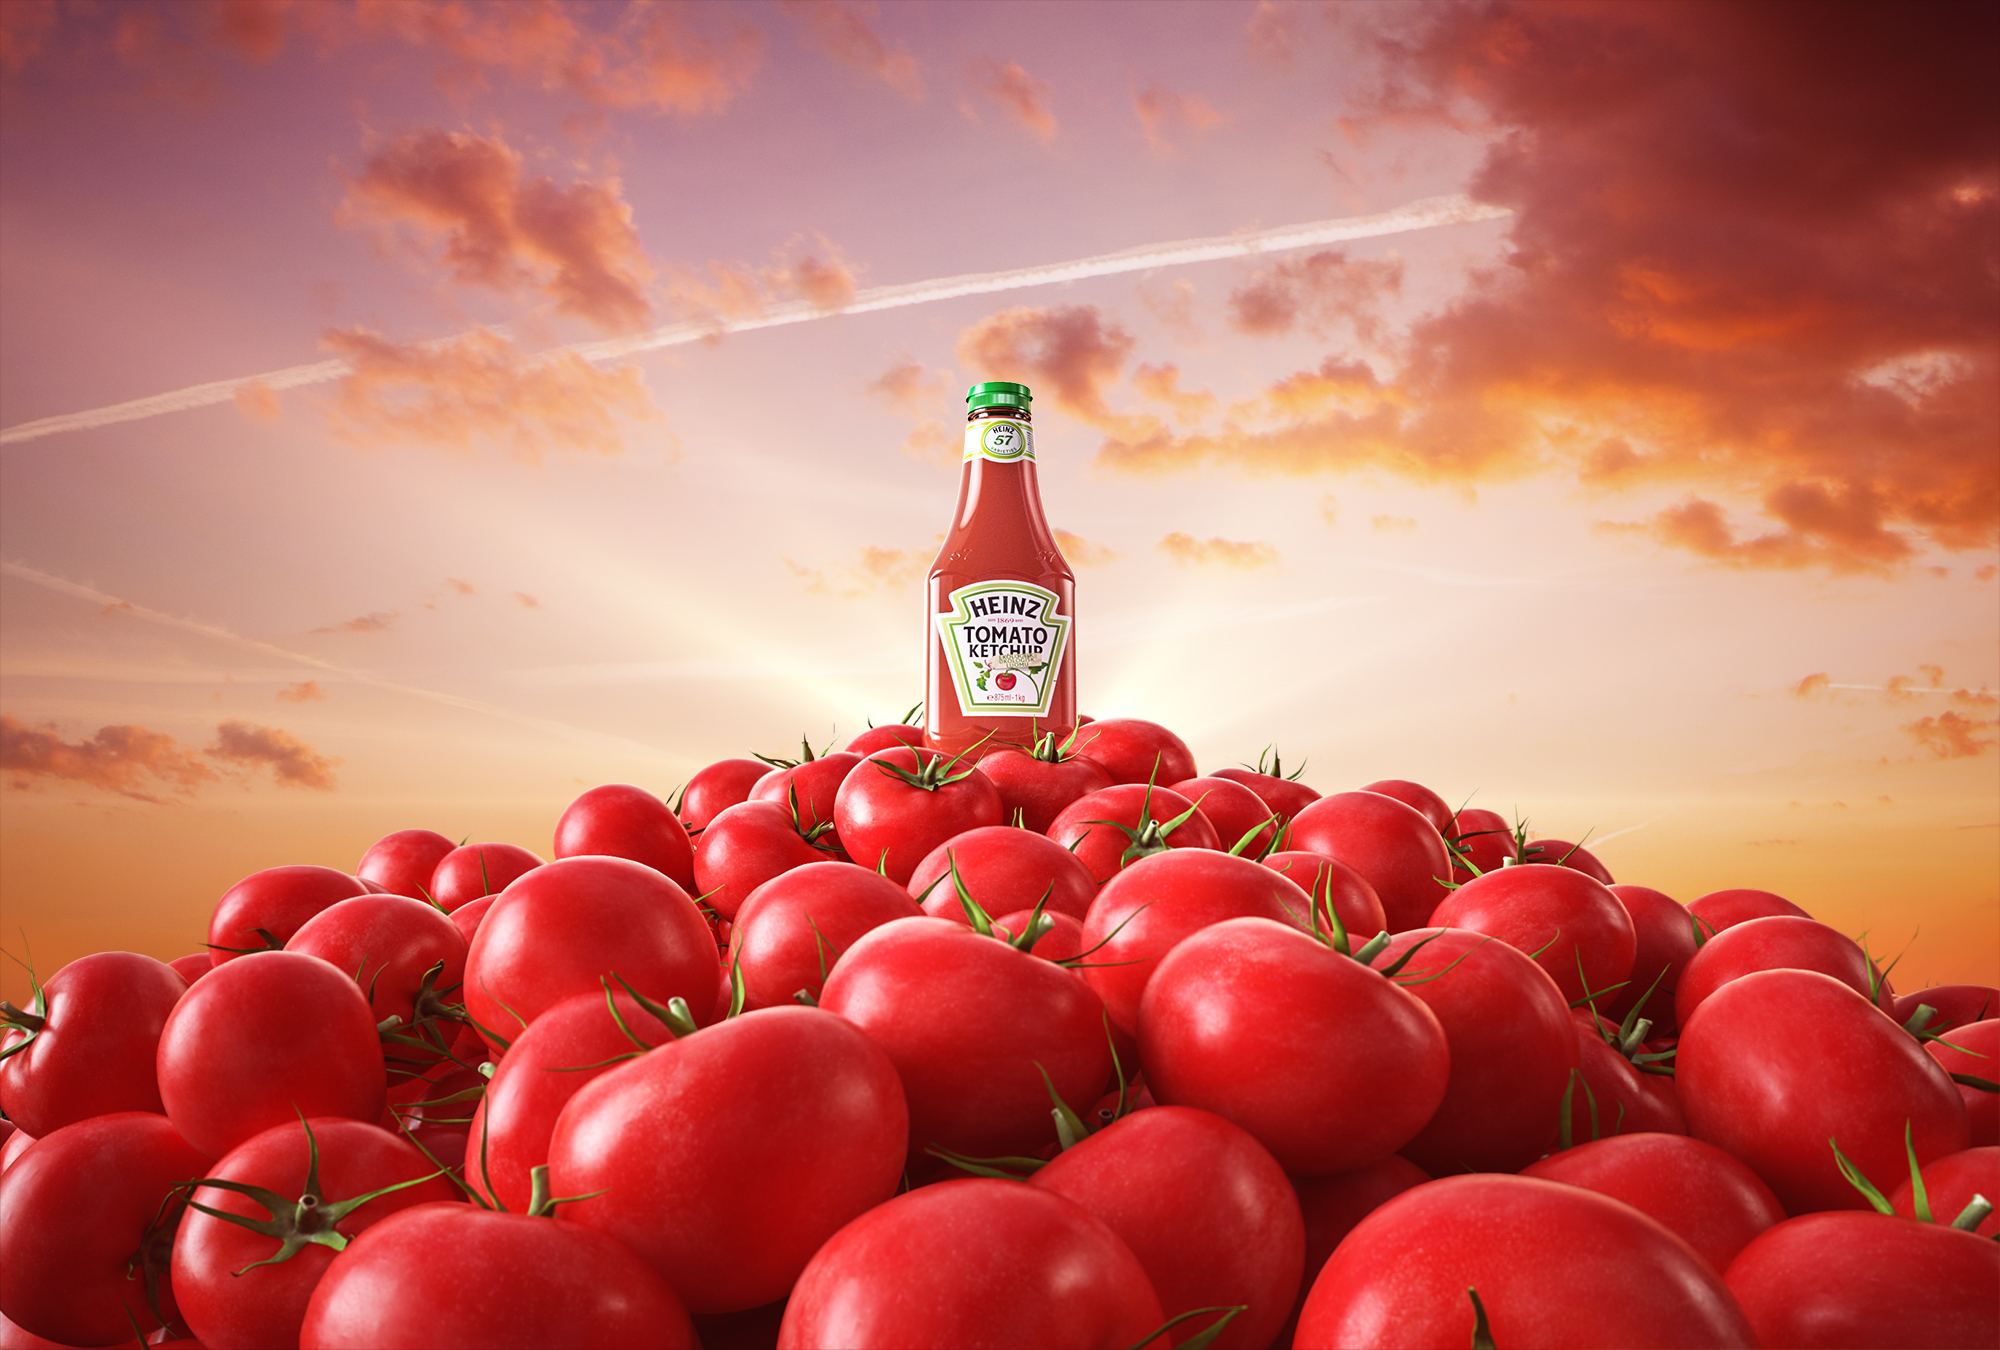 A mountain of tomatoes with a bottle of heinz ketchup on top